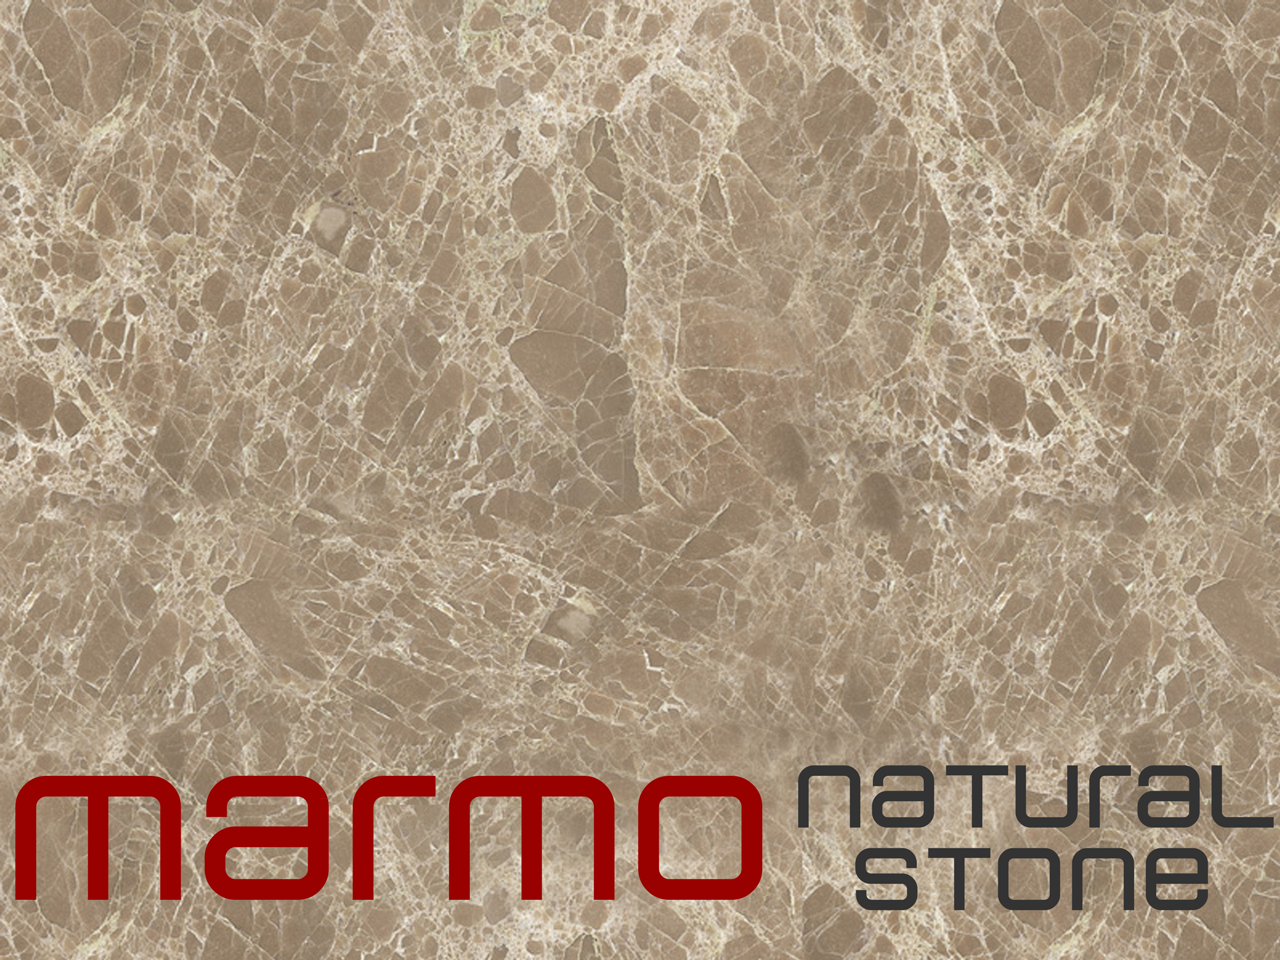 Spanish Marble Light Emperador - MARMO